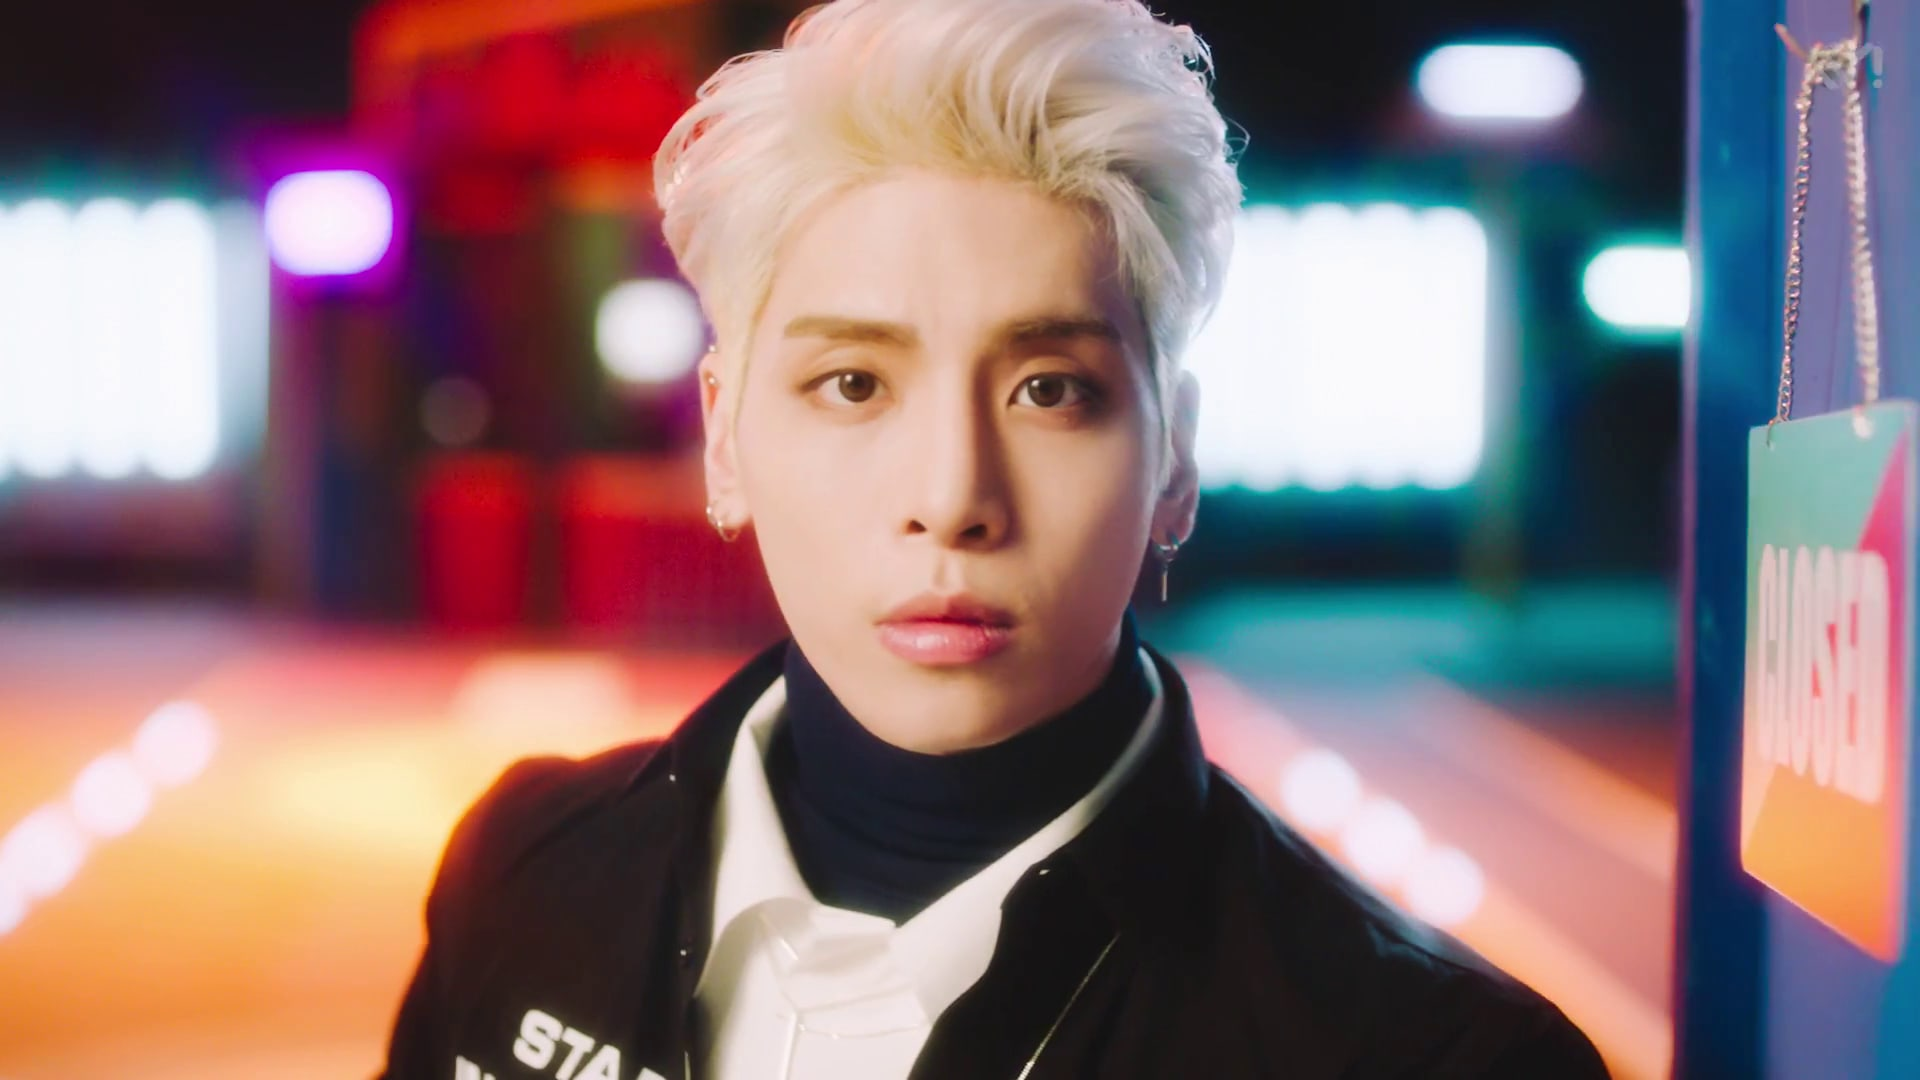 Watch: SHINee's Jonghyun Is Forever Shining In New MV